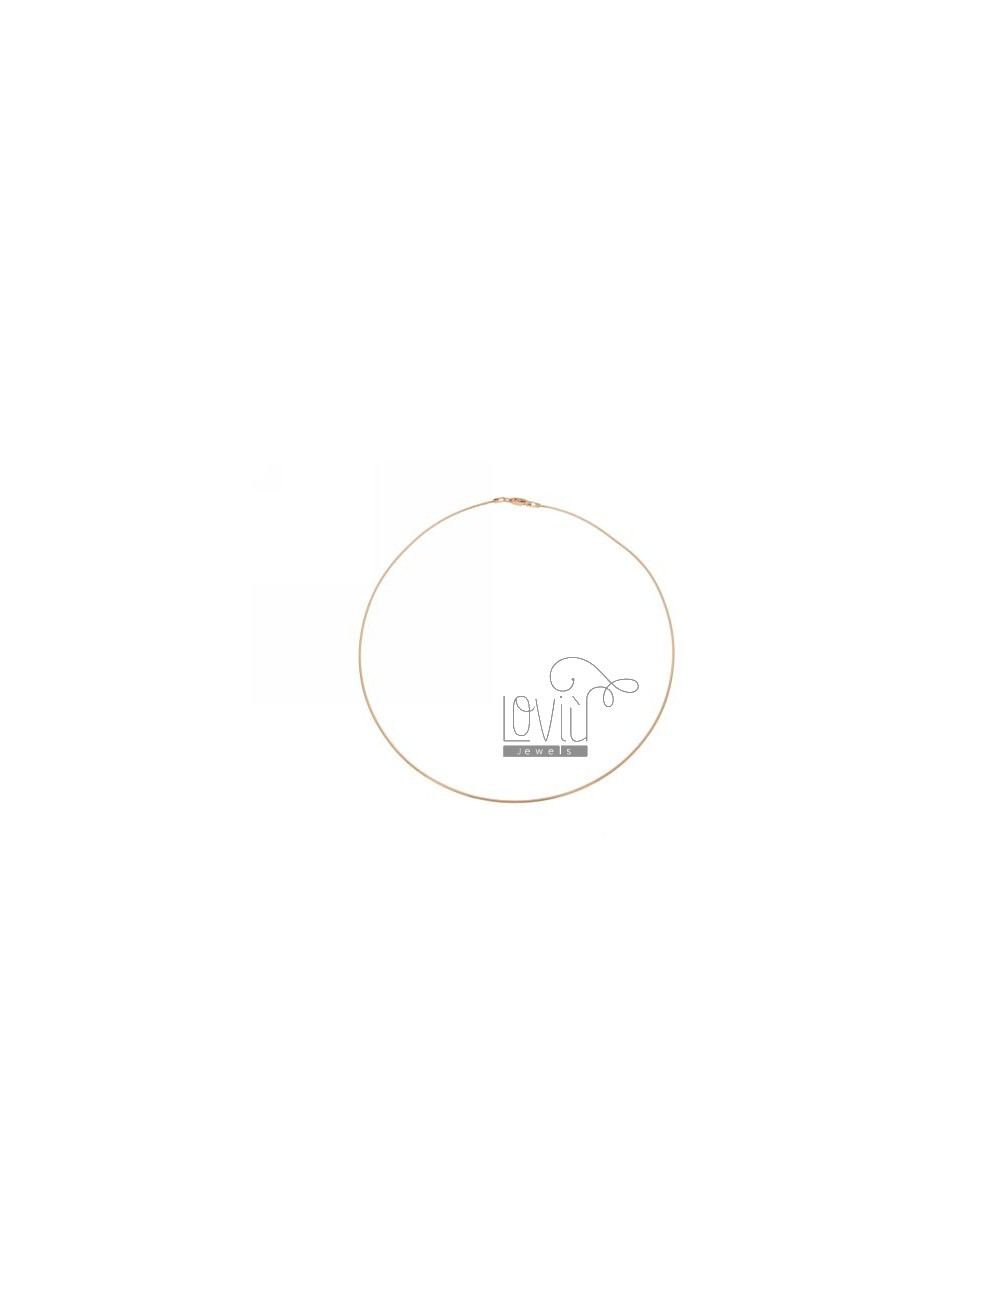 ROSE GOLD PLATED RIGID NECKLACE MM 1 IN SILVER TIT 925